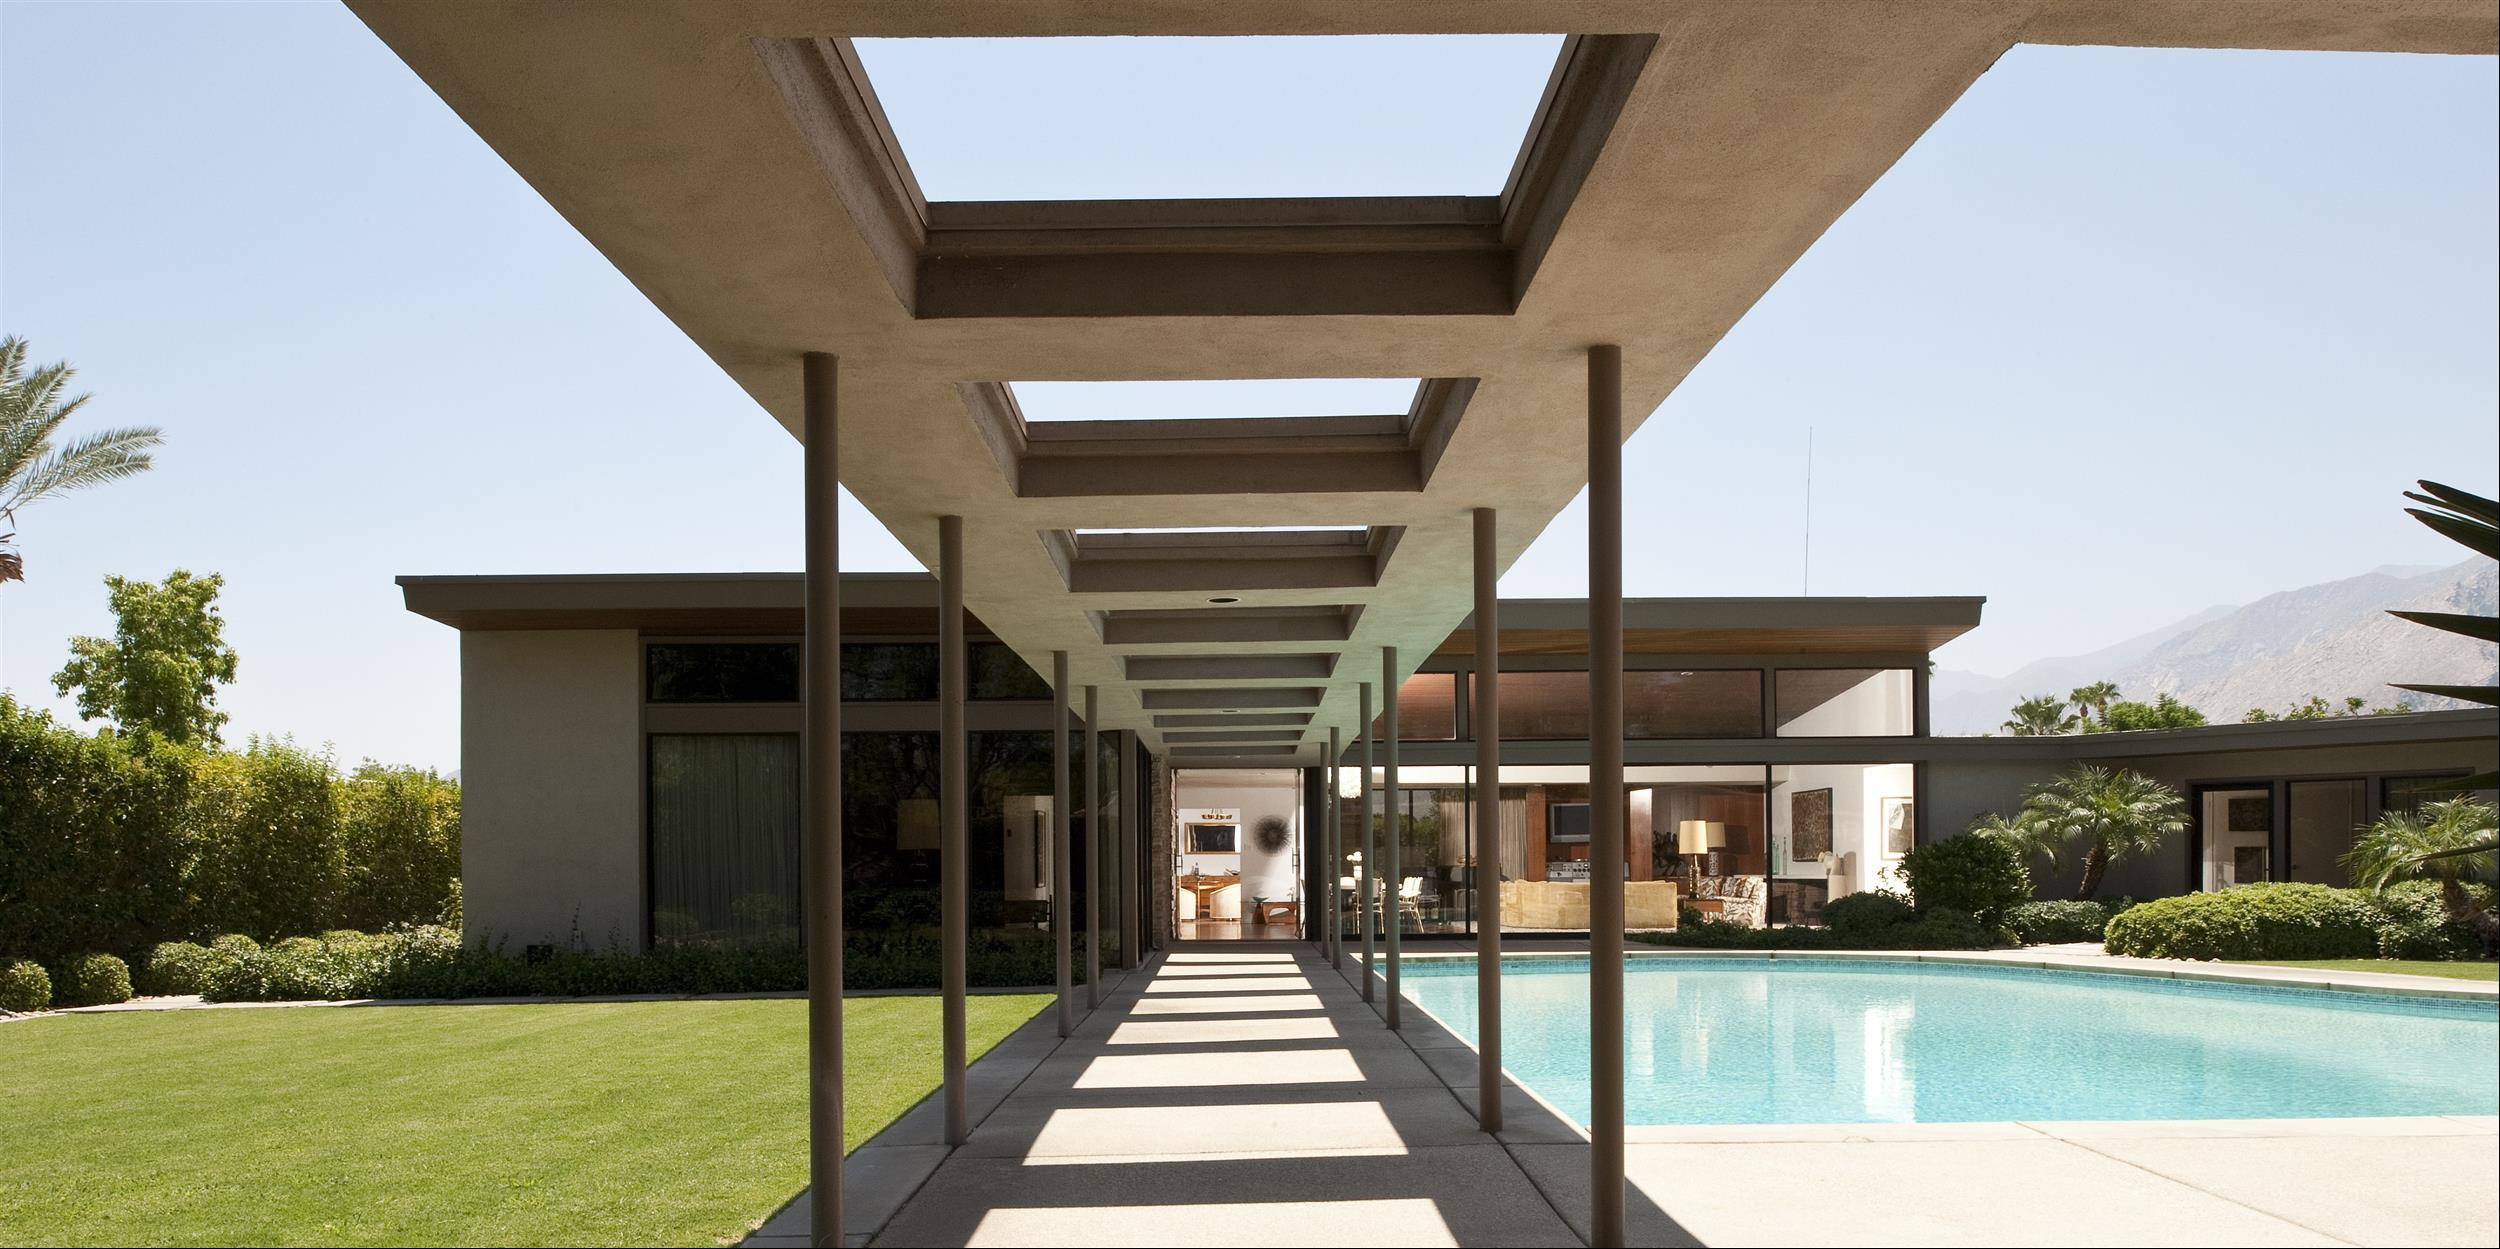 PALM SPRINGS ARCHITECTURAL TOUR